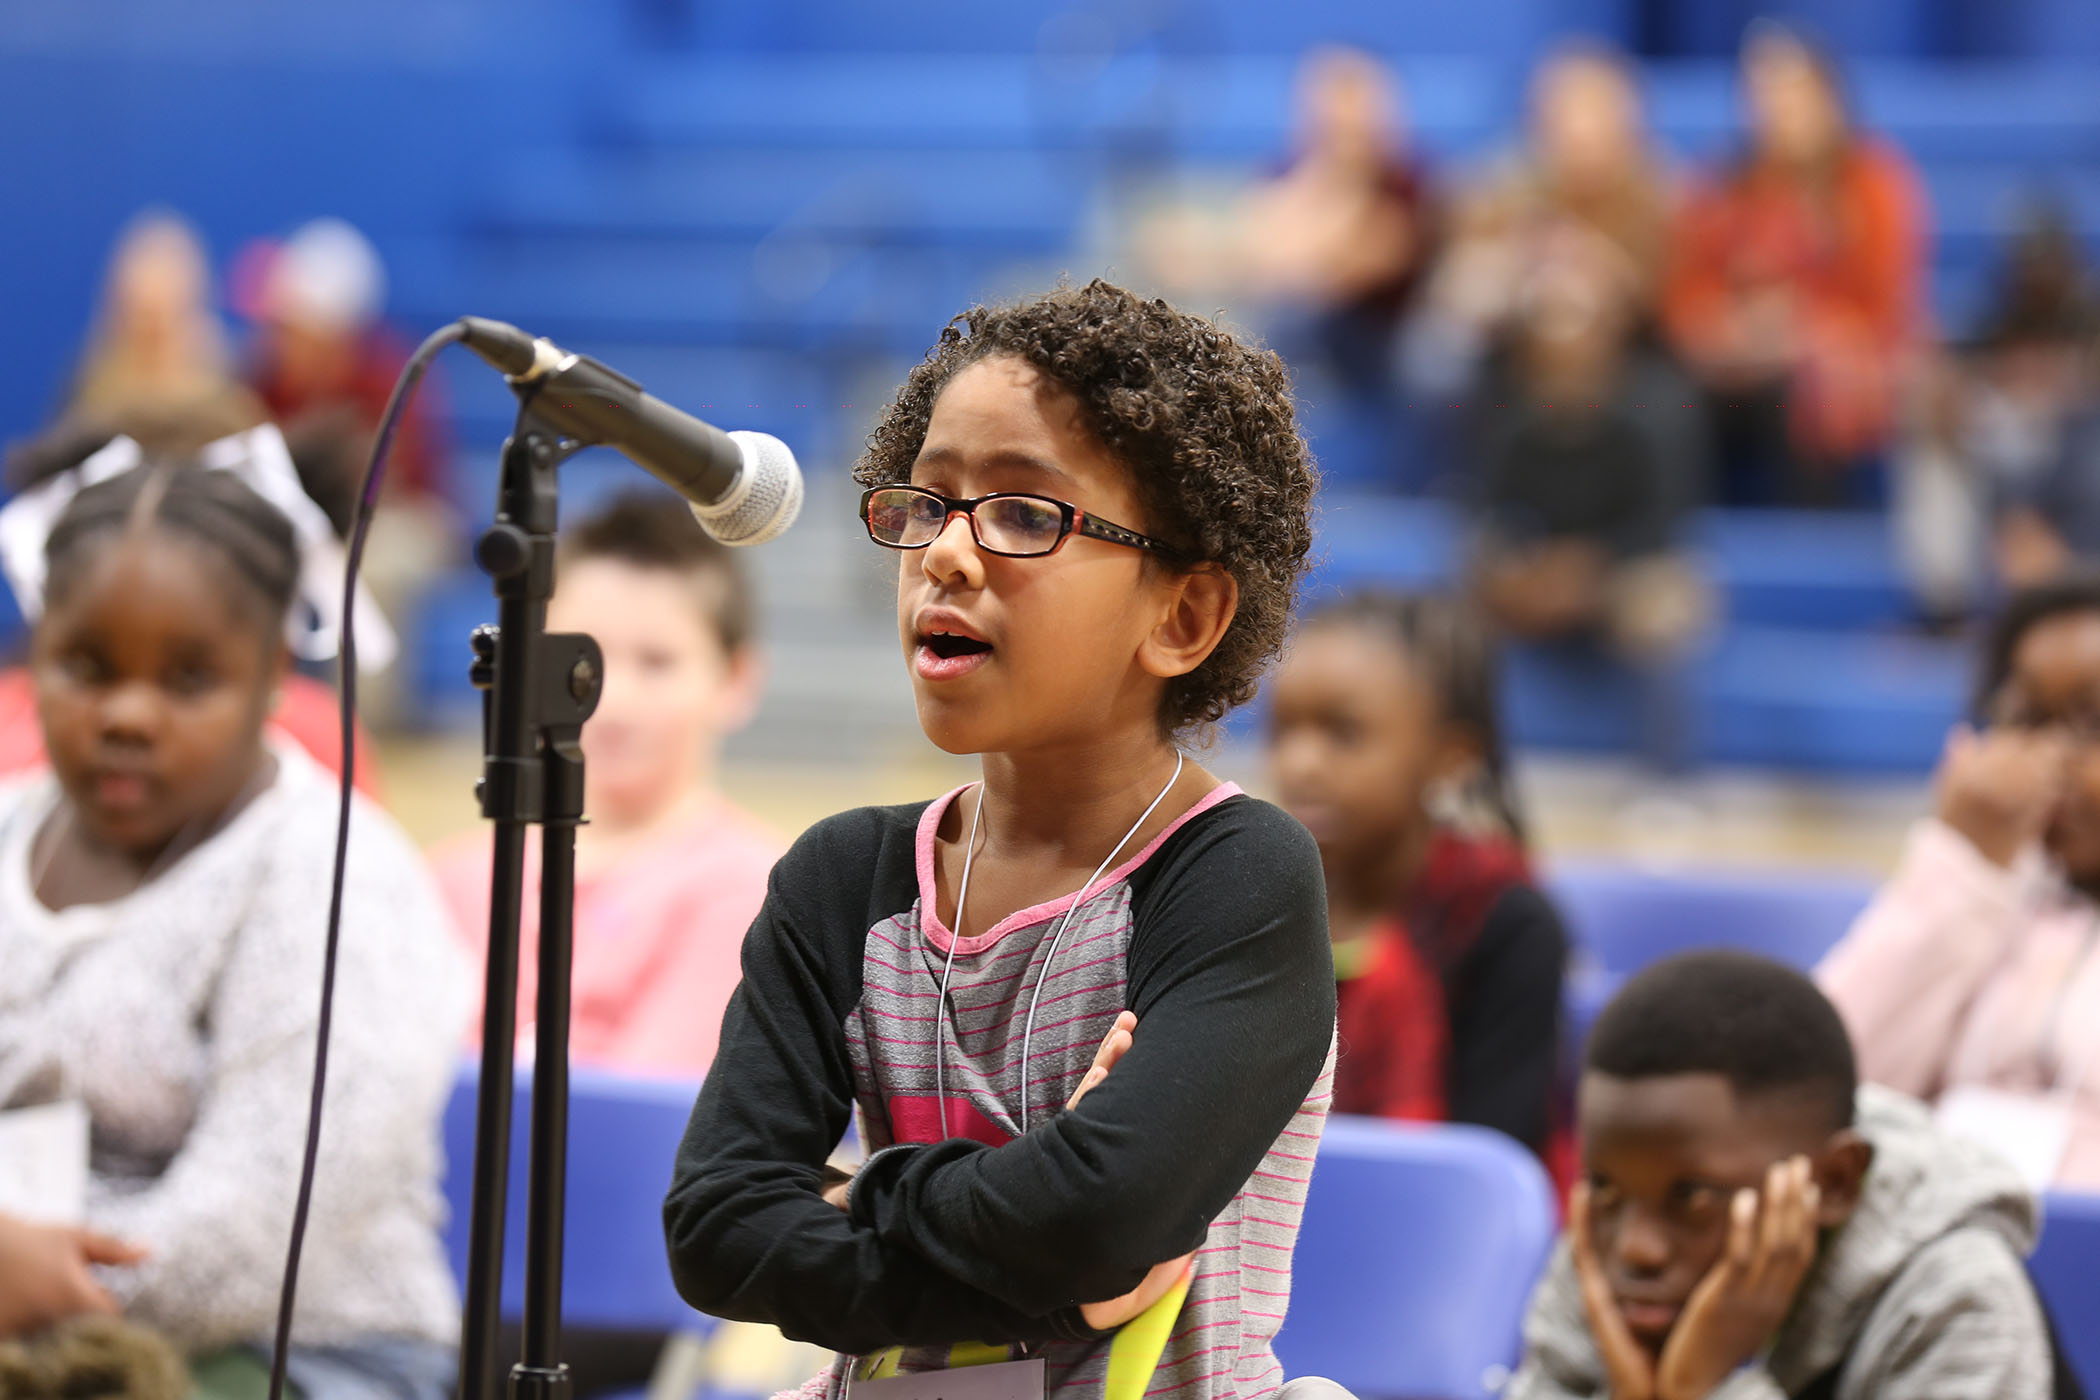 A QUE student competes in the school's spelling bee.